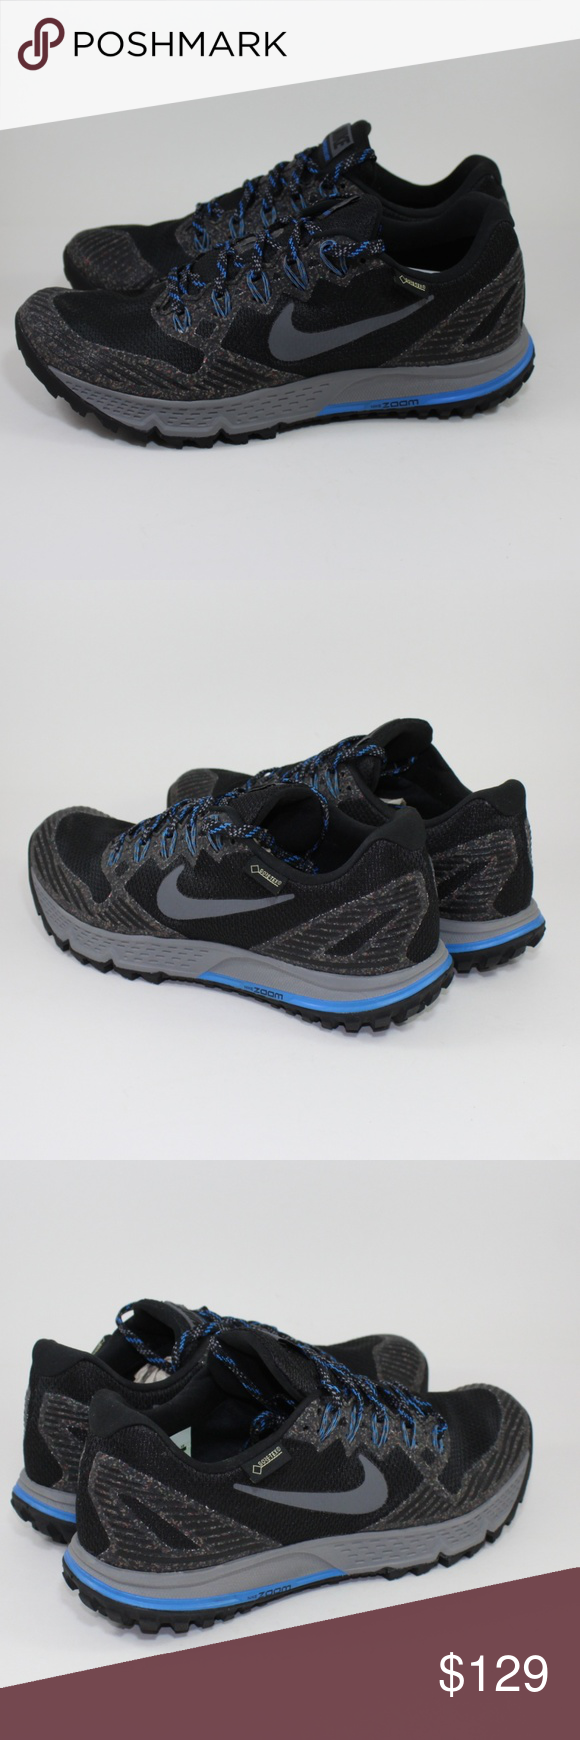 3d6186d319dad5 Nike Air Zoom Wildhorse 3 GTX Gore-Tex Hiking Shoe Nike Air Zoom Wildhorse 3  GTX Gore-Tex Running Hiking Shoe Nike   805569 001 Men s Size 8 Blk Gray  Brand ...